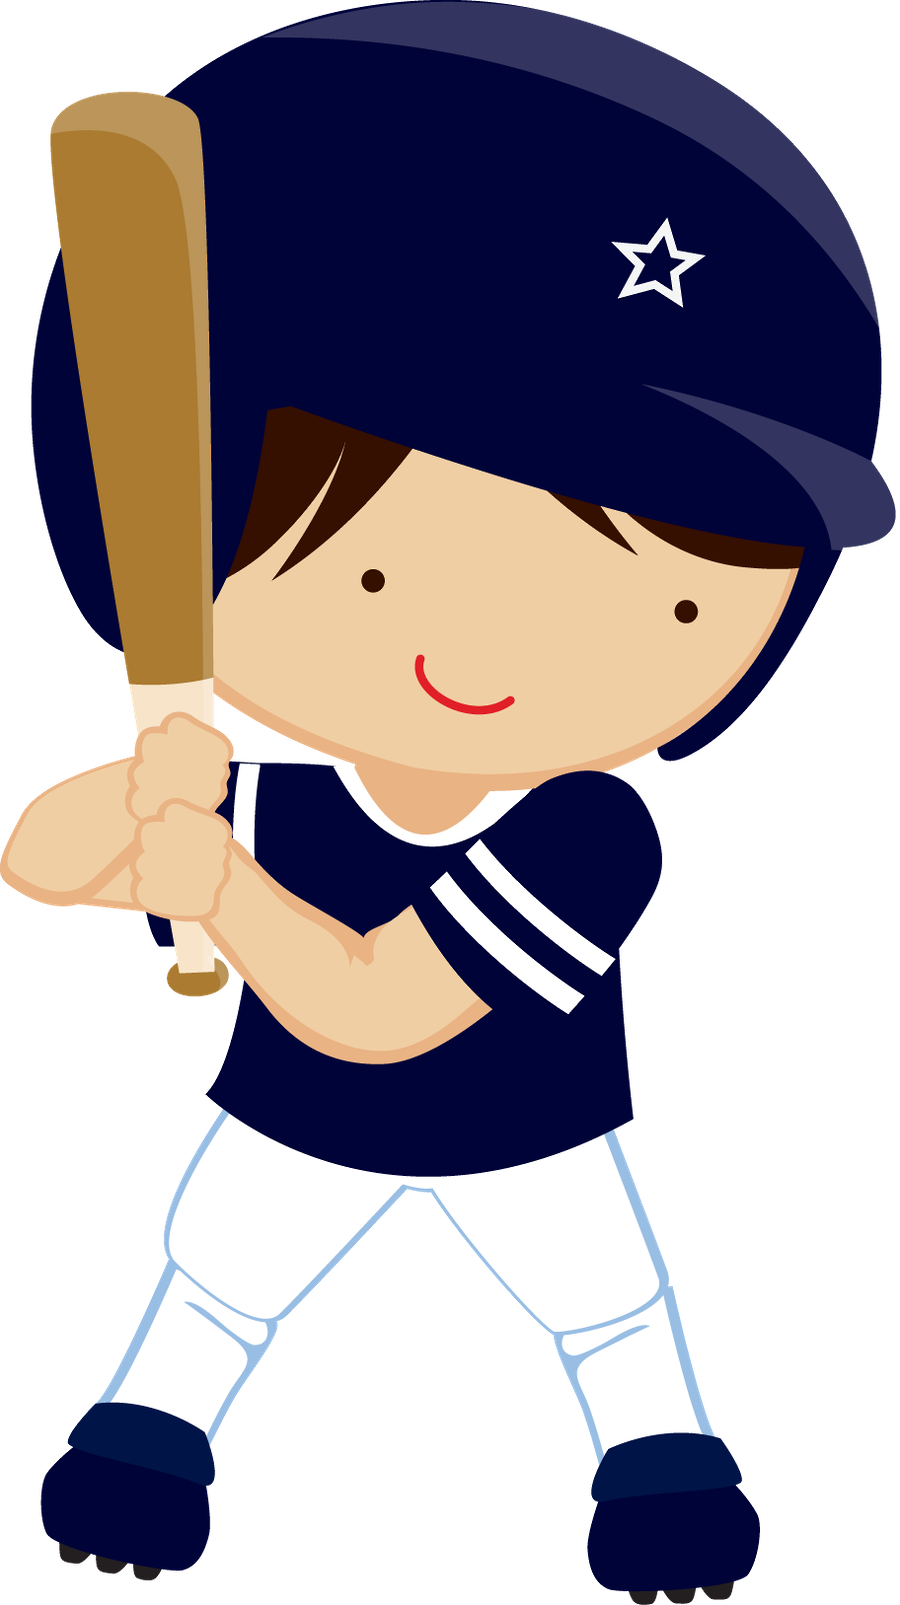 Baseball hitting clipart picture royalty free ZWD_WhiteStar - Minus | alreadyclipart - sports; | Pinterest | Clip ... picture royalty free